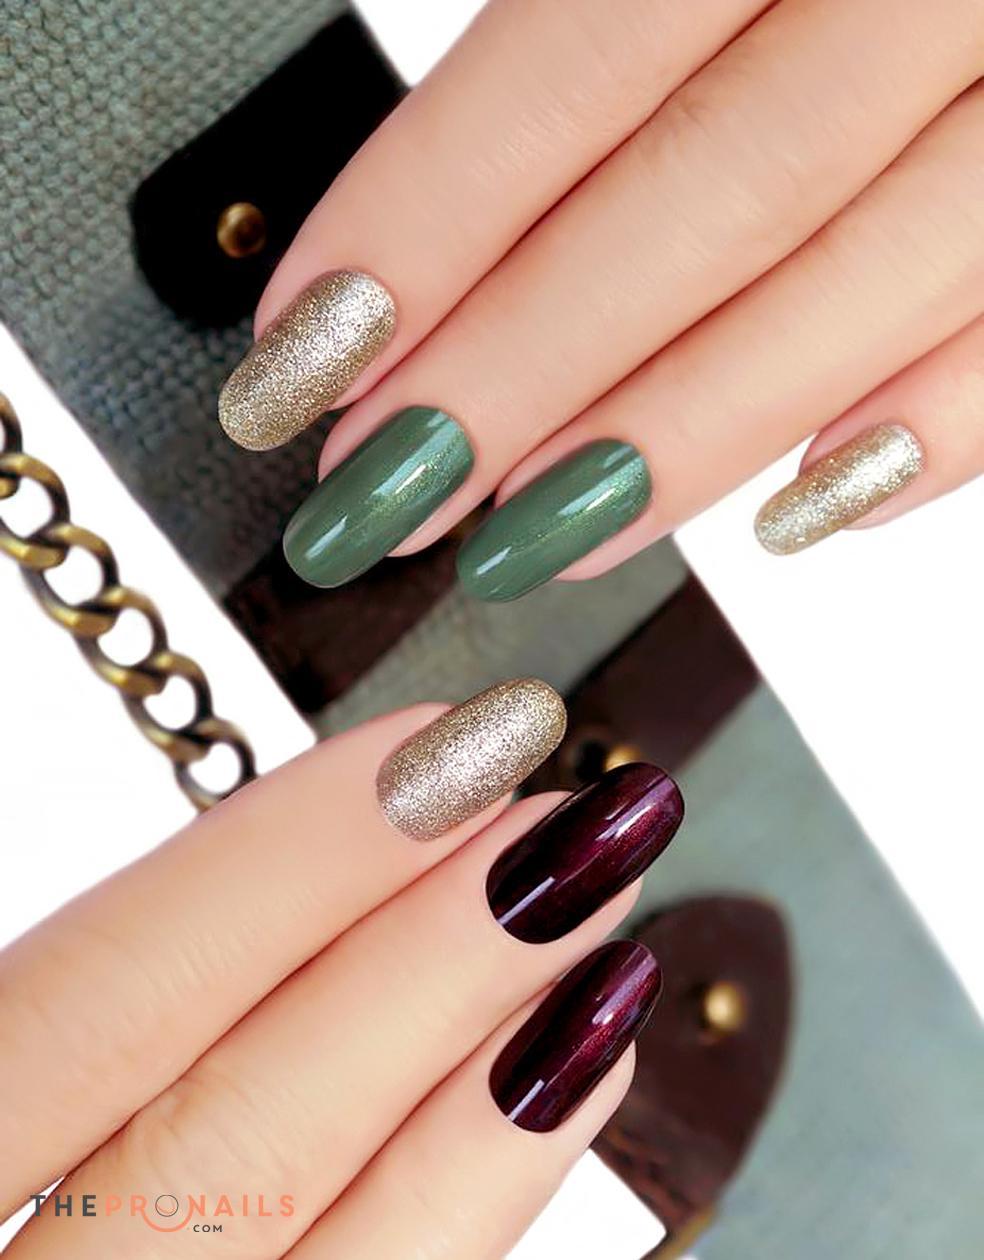 Acrylic Fill In Is A Mon Need Because Nails Tend To Get Brittle After While And Gaps Appeared Therefore Routine Maintenance Necessary